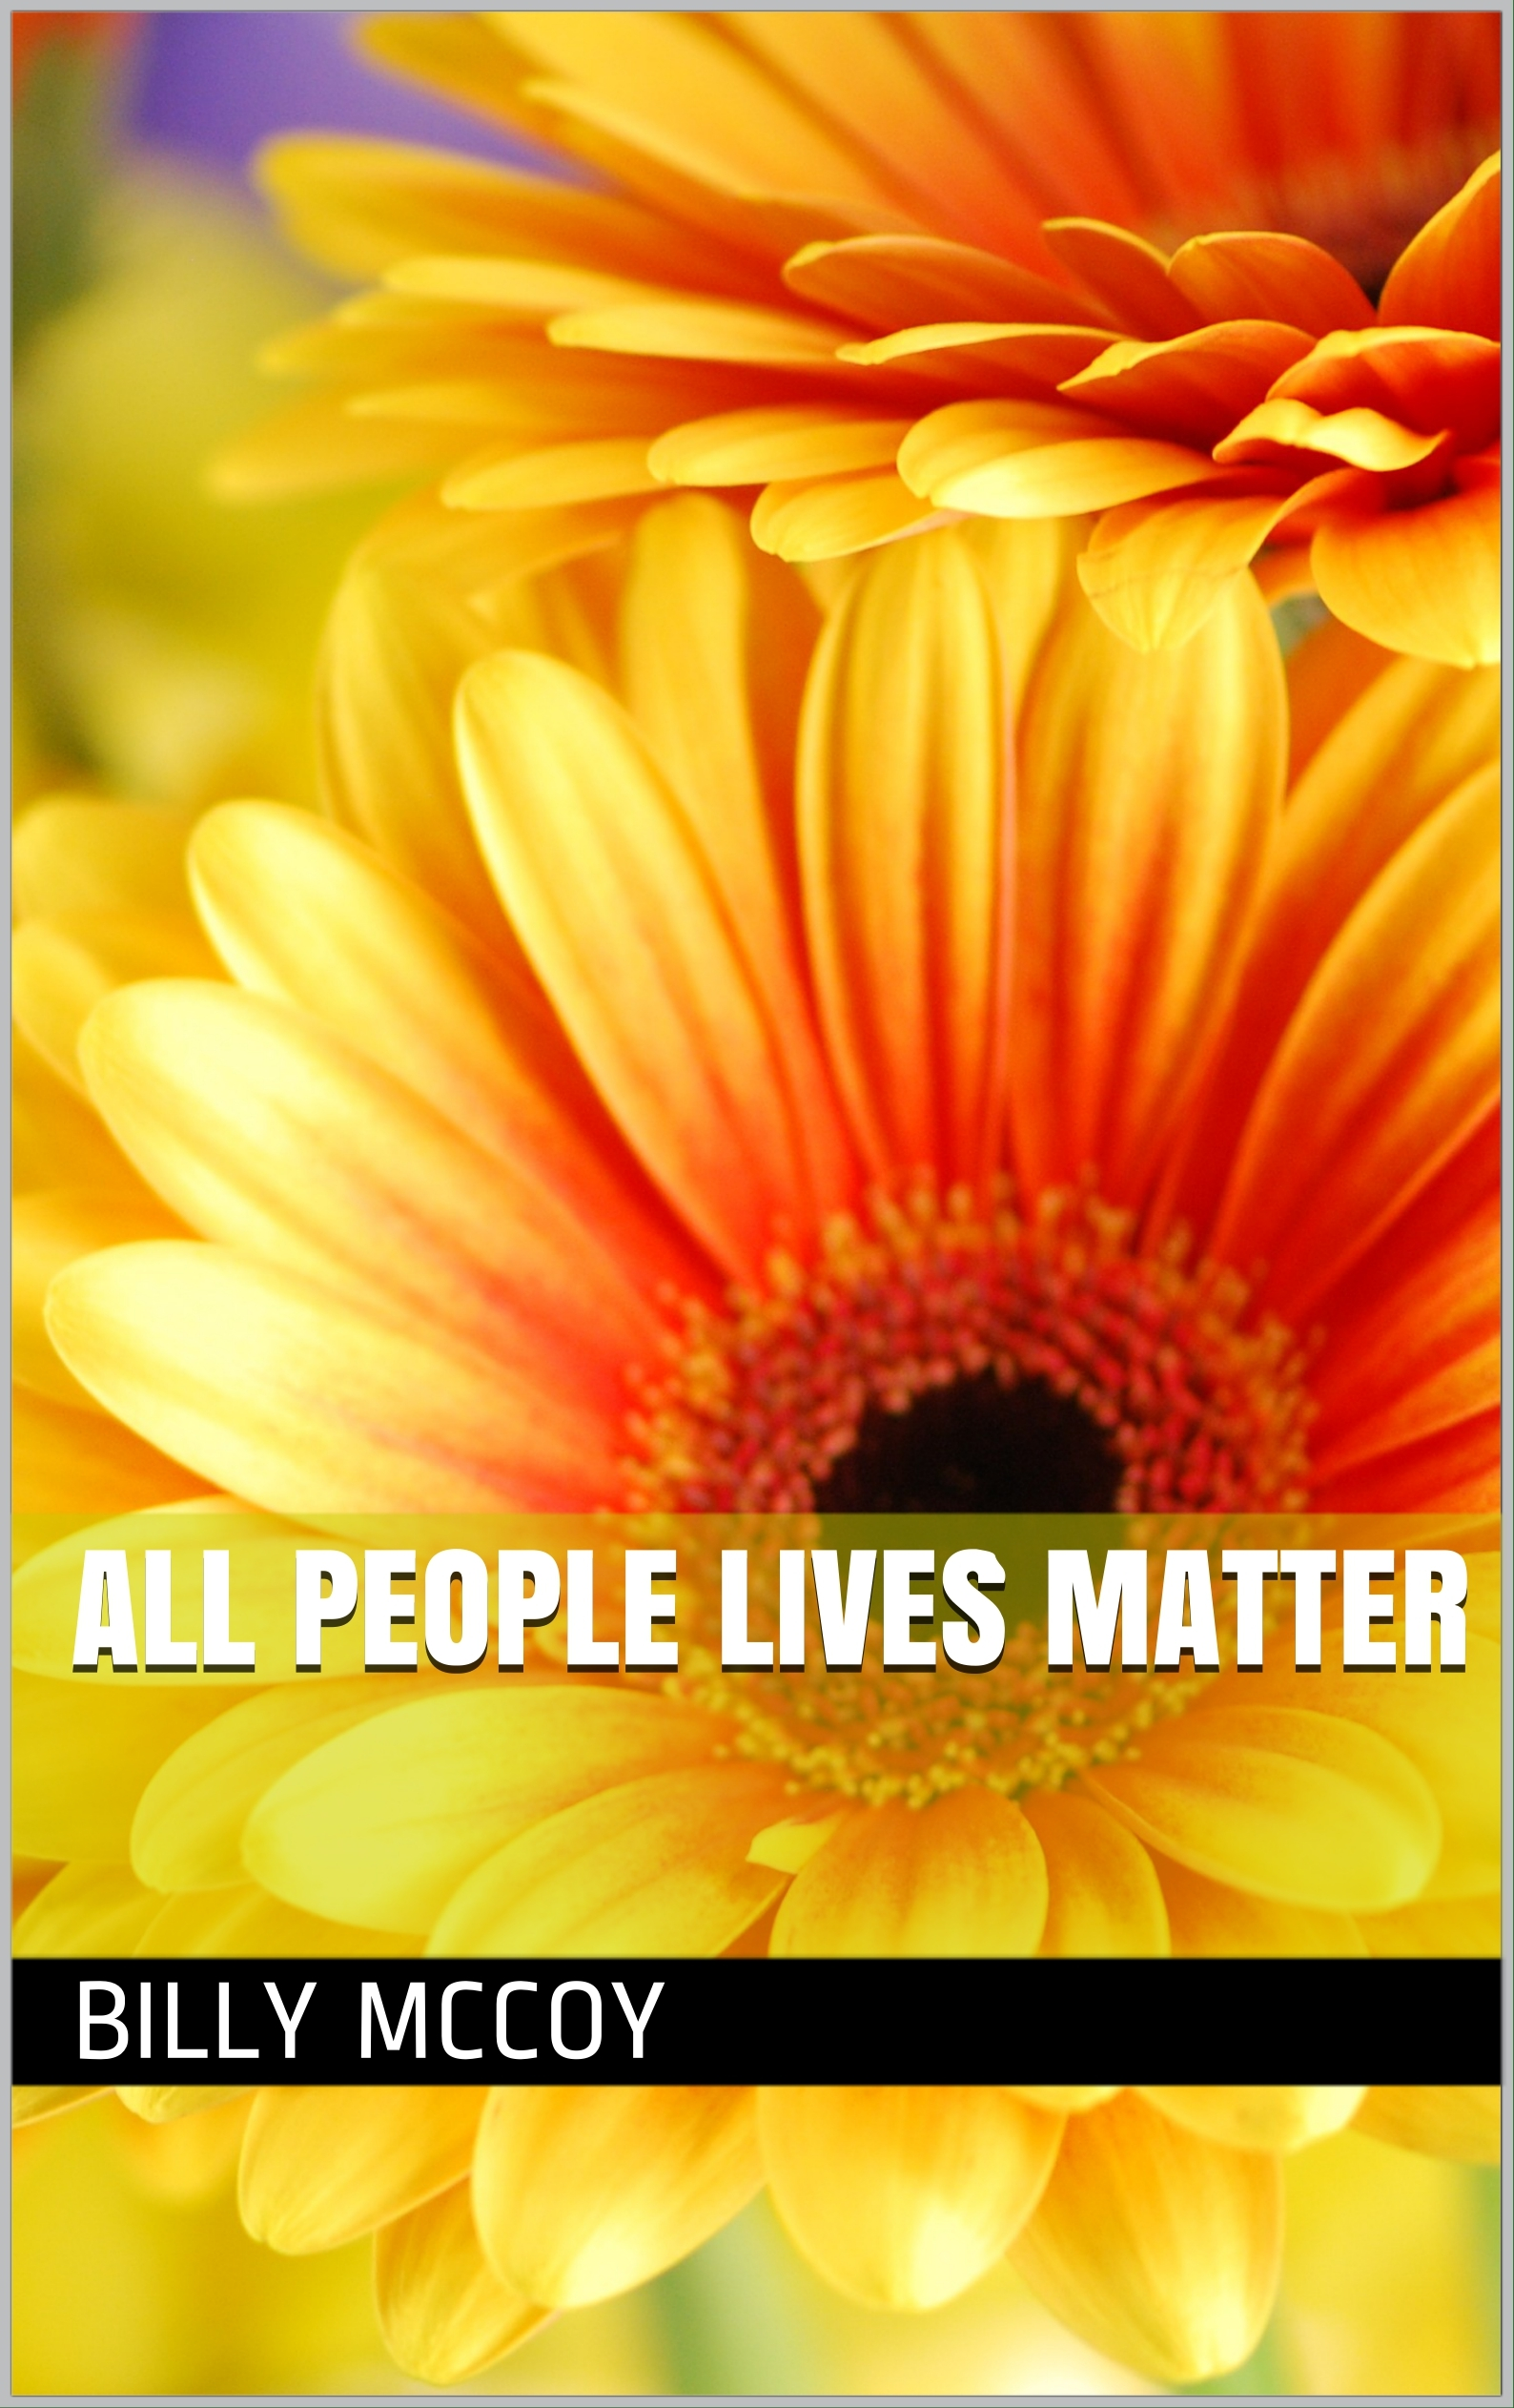 all people lives matter Billy McCoy